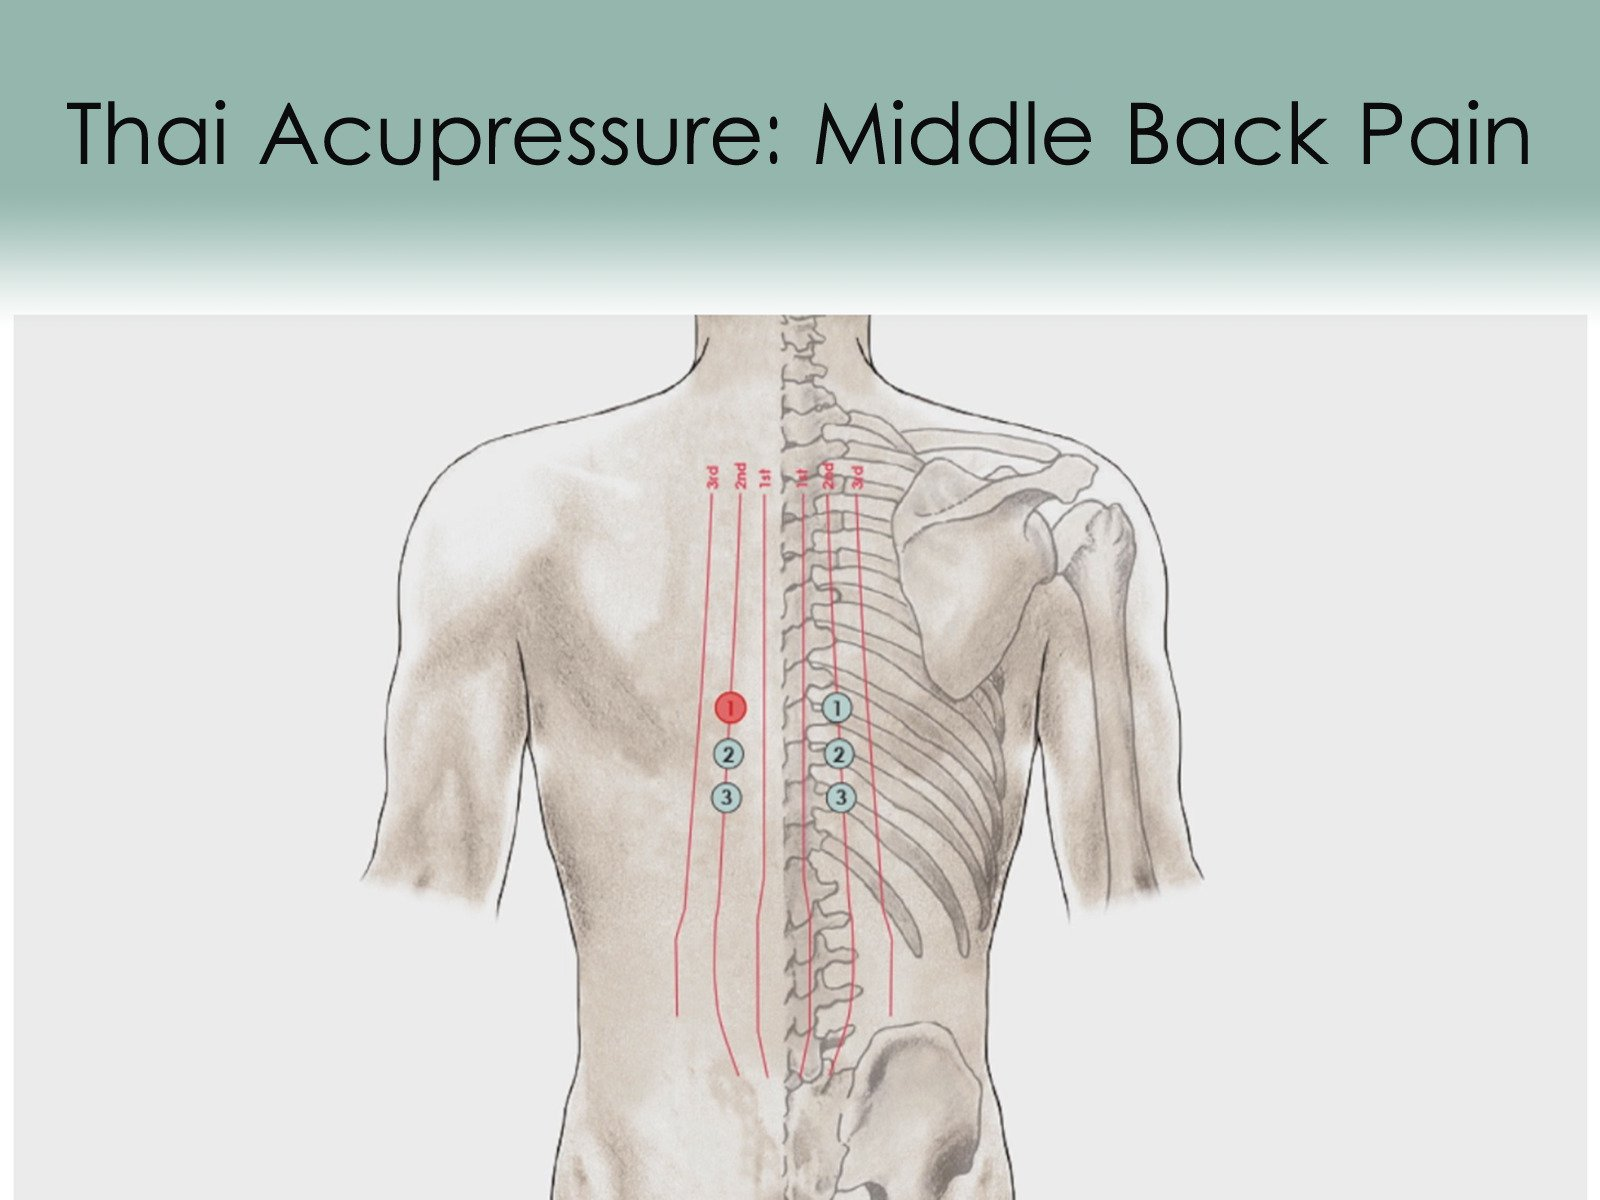 Treatment Routine 32 - Middle Back Pain